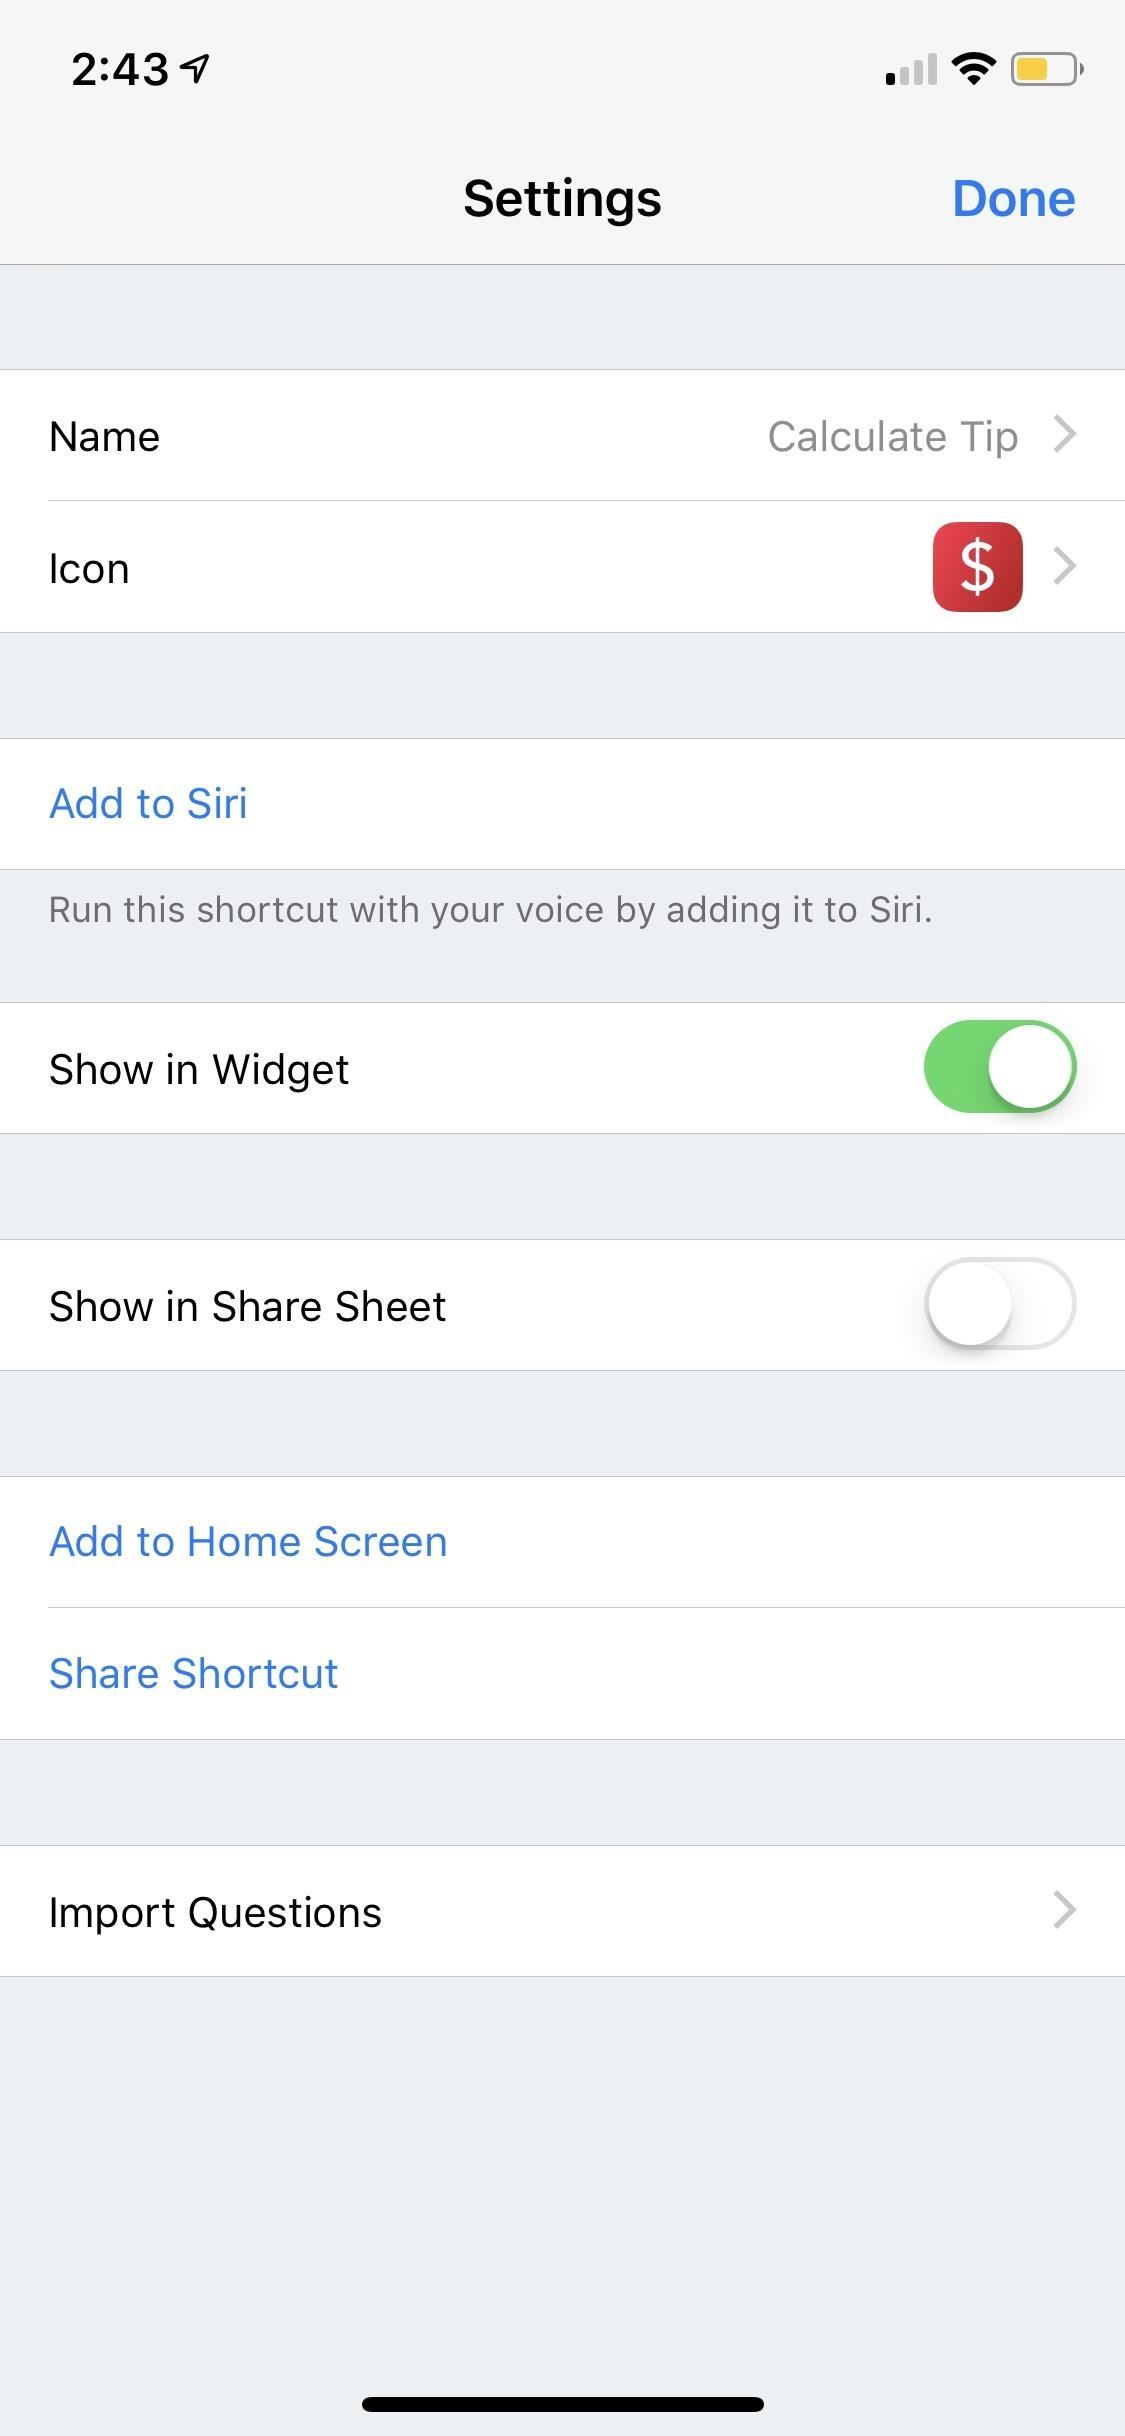 iOS 12 Shortcut App aims to replace Apple's workflow forever